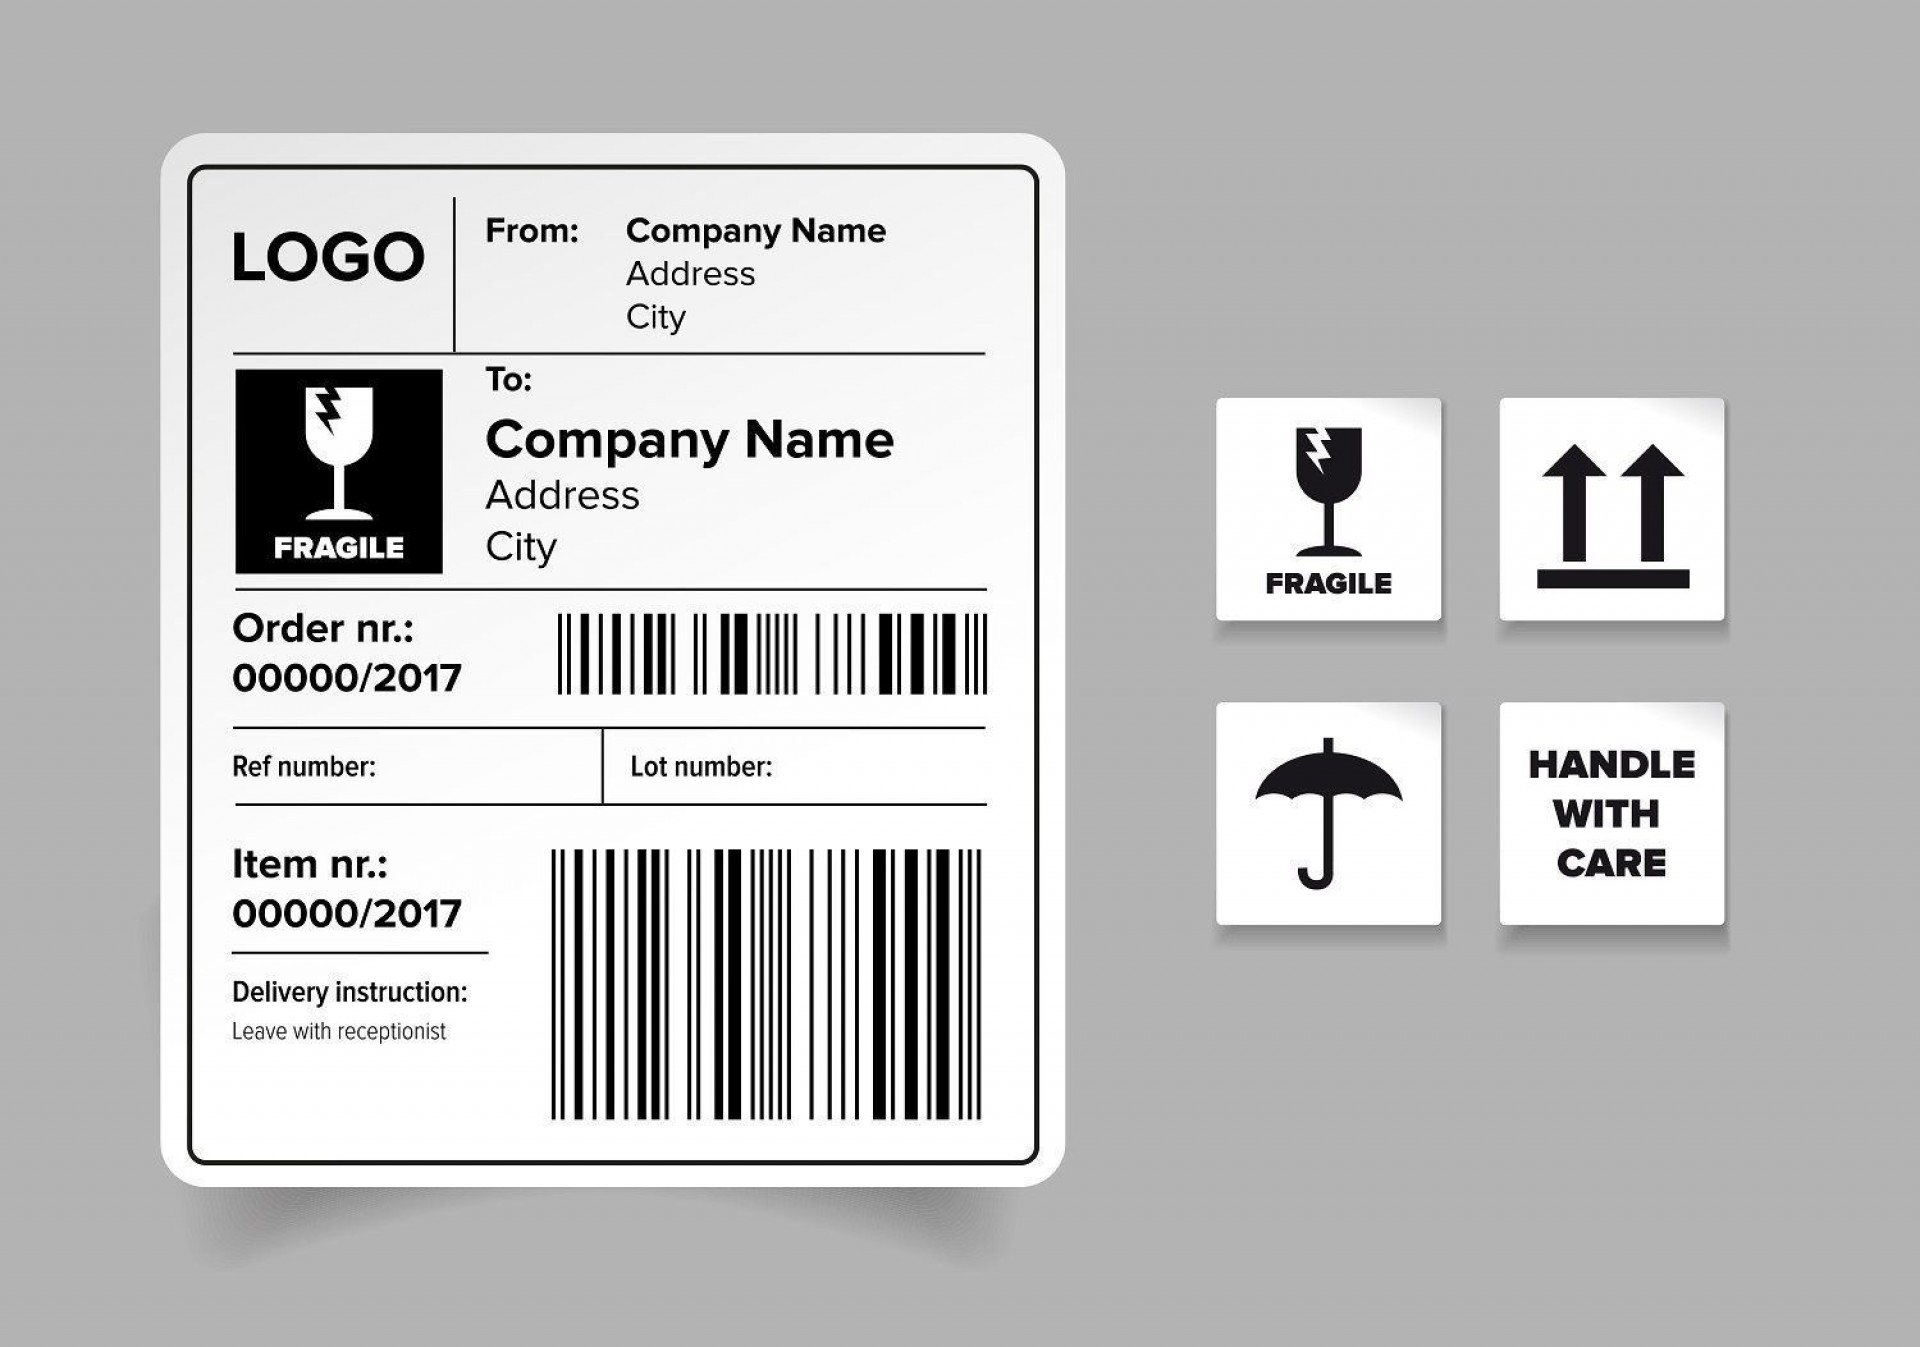 007 Outstanding Free Shipping Label Template Photo  Templates Usp Avery Word1920